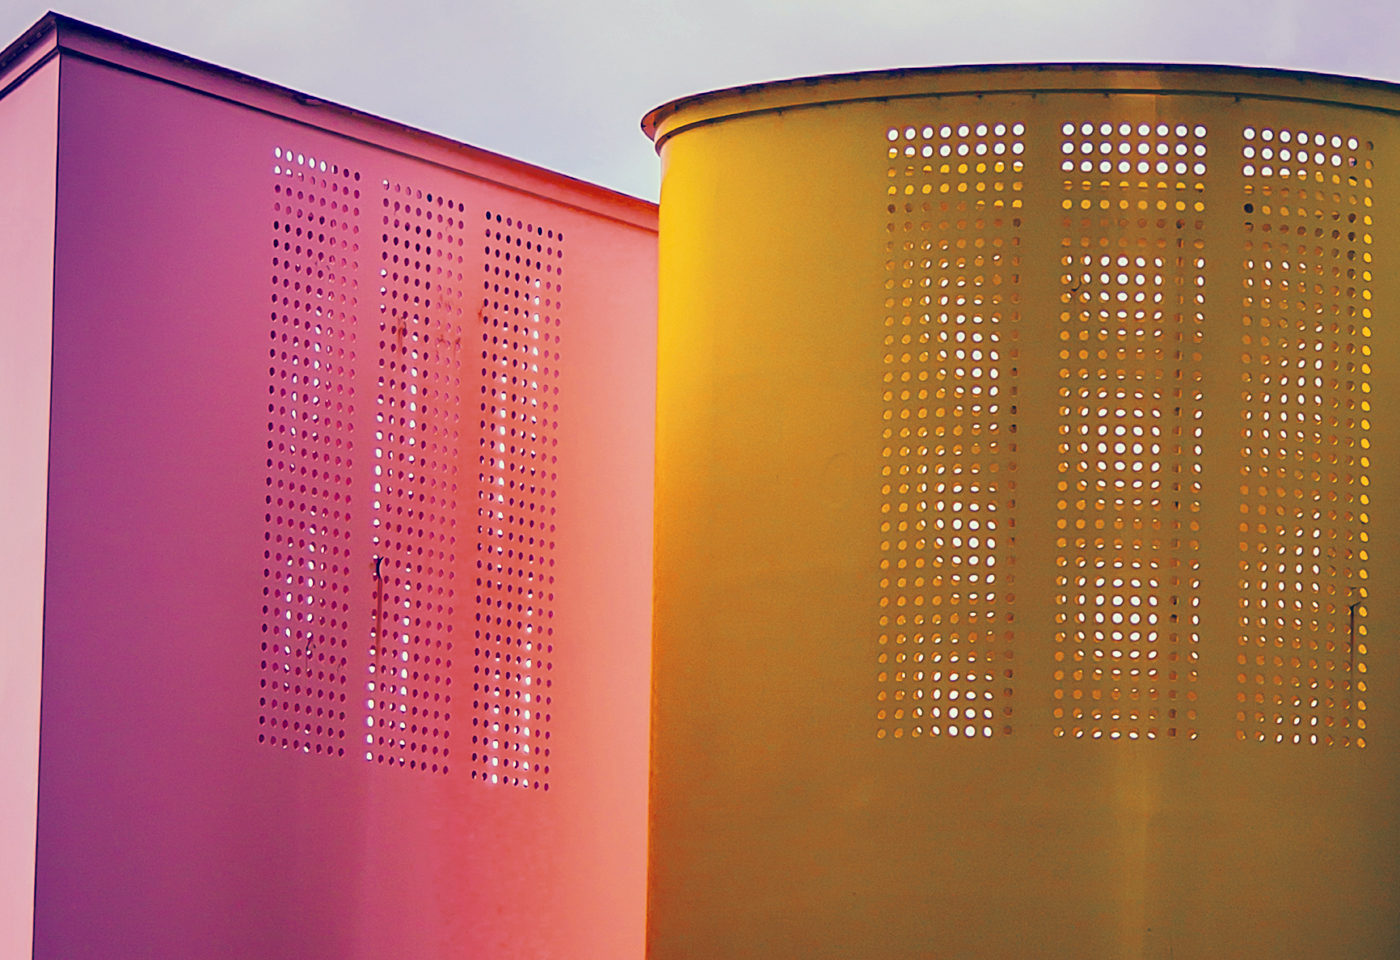 AIRCON by Harvey Whittam